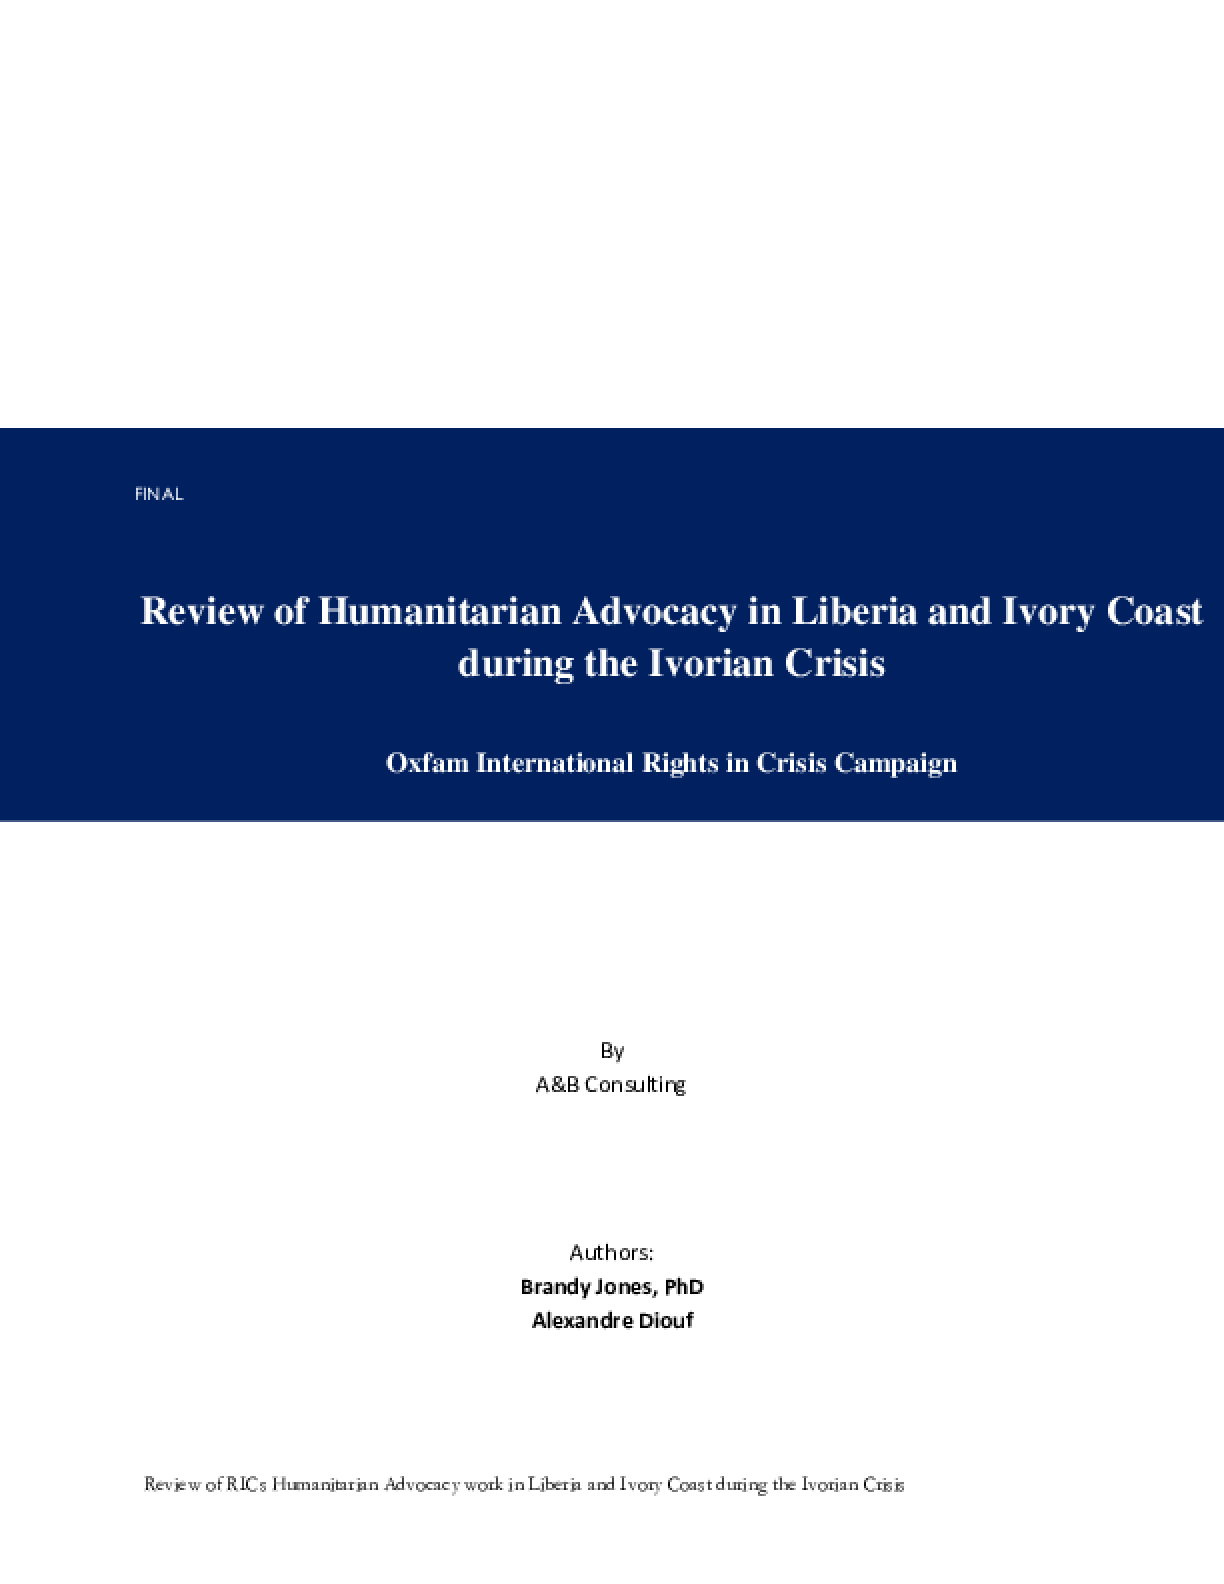 Review of Humanitarian Advocacy in Liberia and Ivory Coast during the Ivorian Crisis